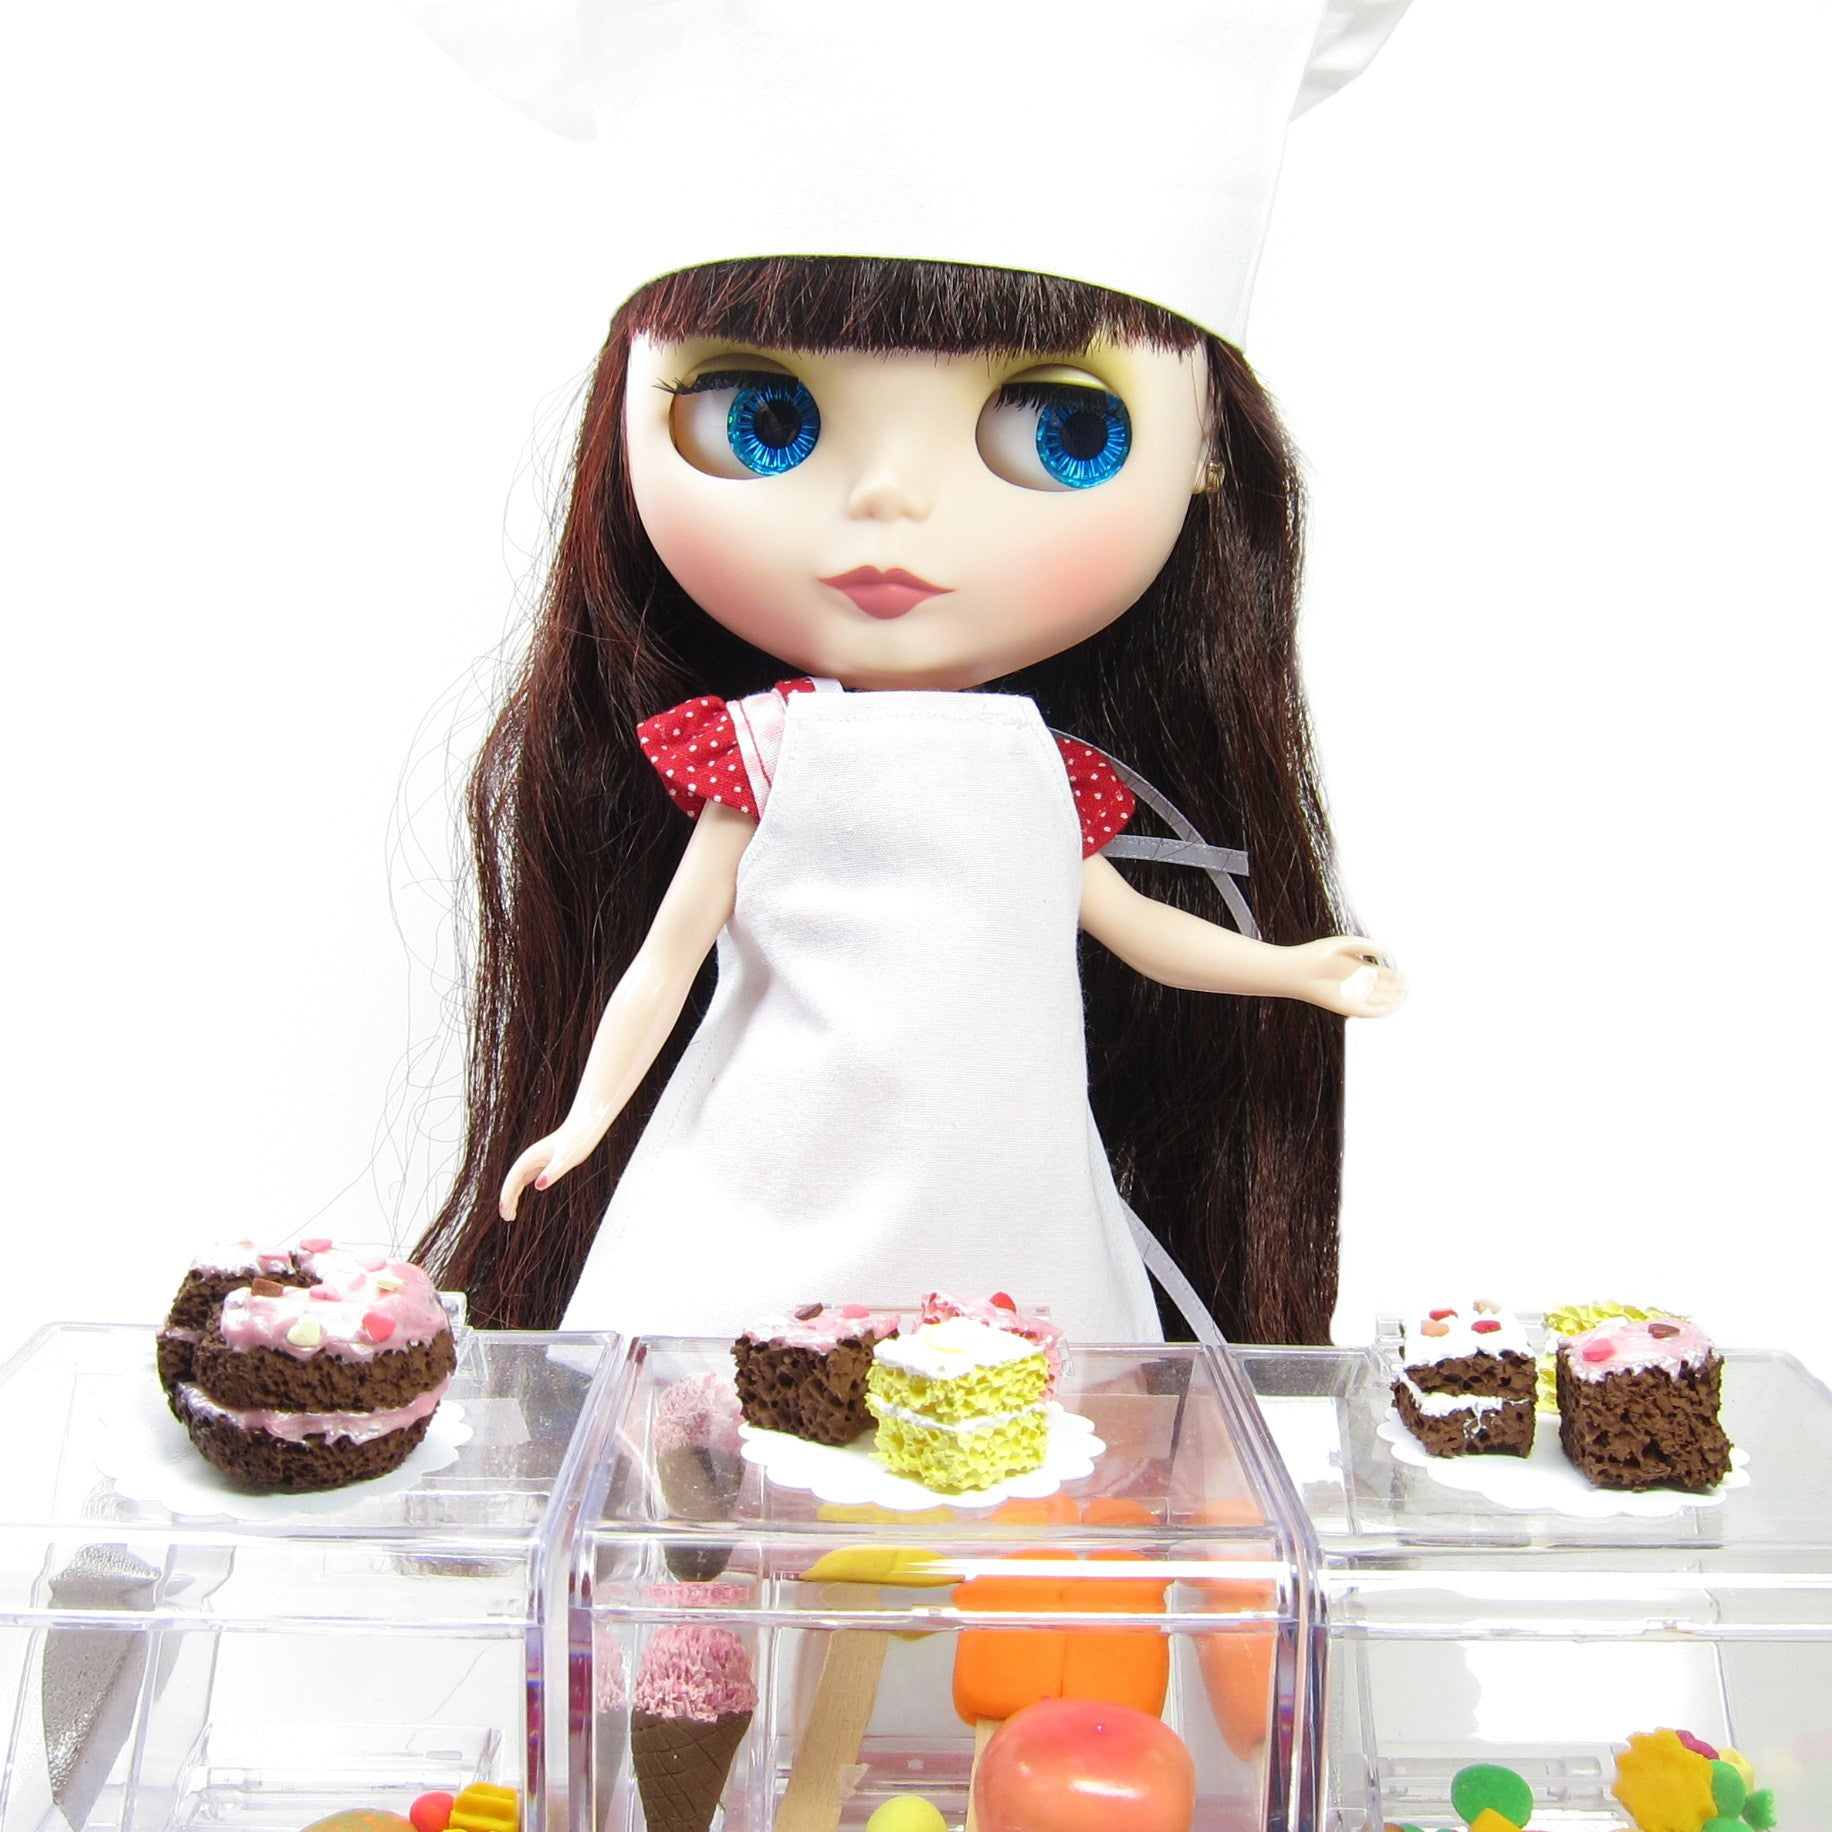 blythe chef s hat doll accessory for kitchen cooking brown